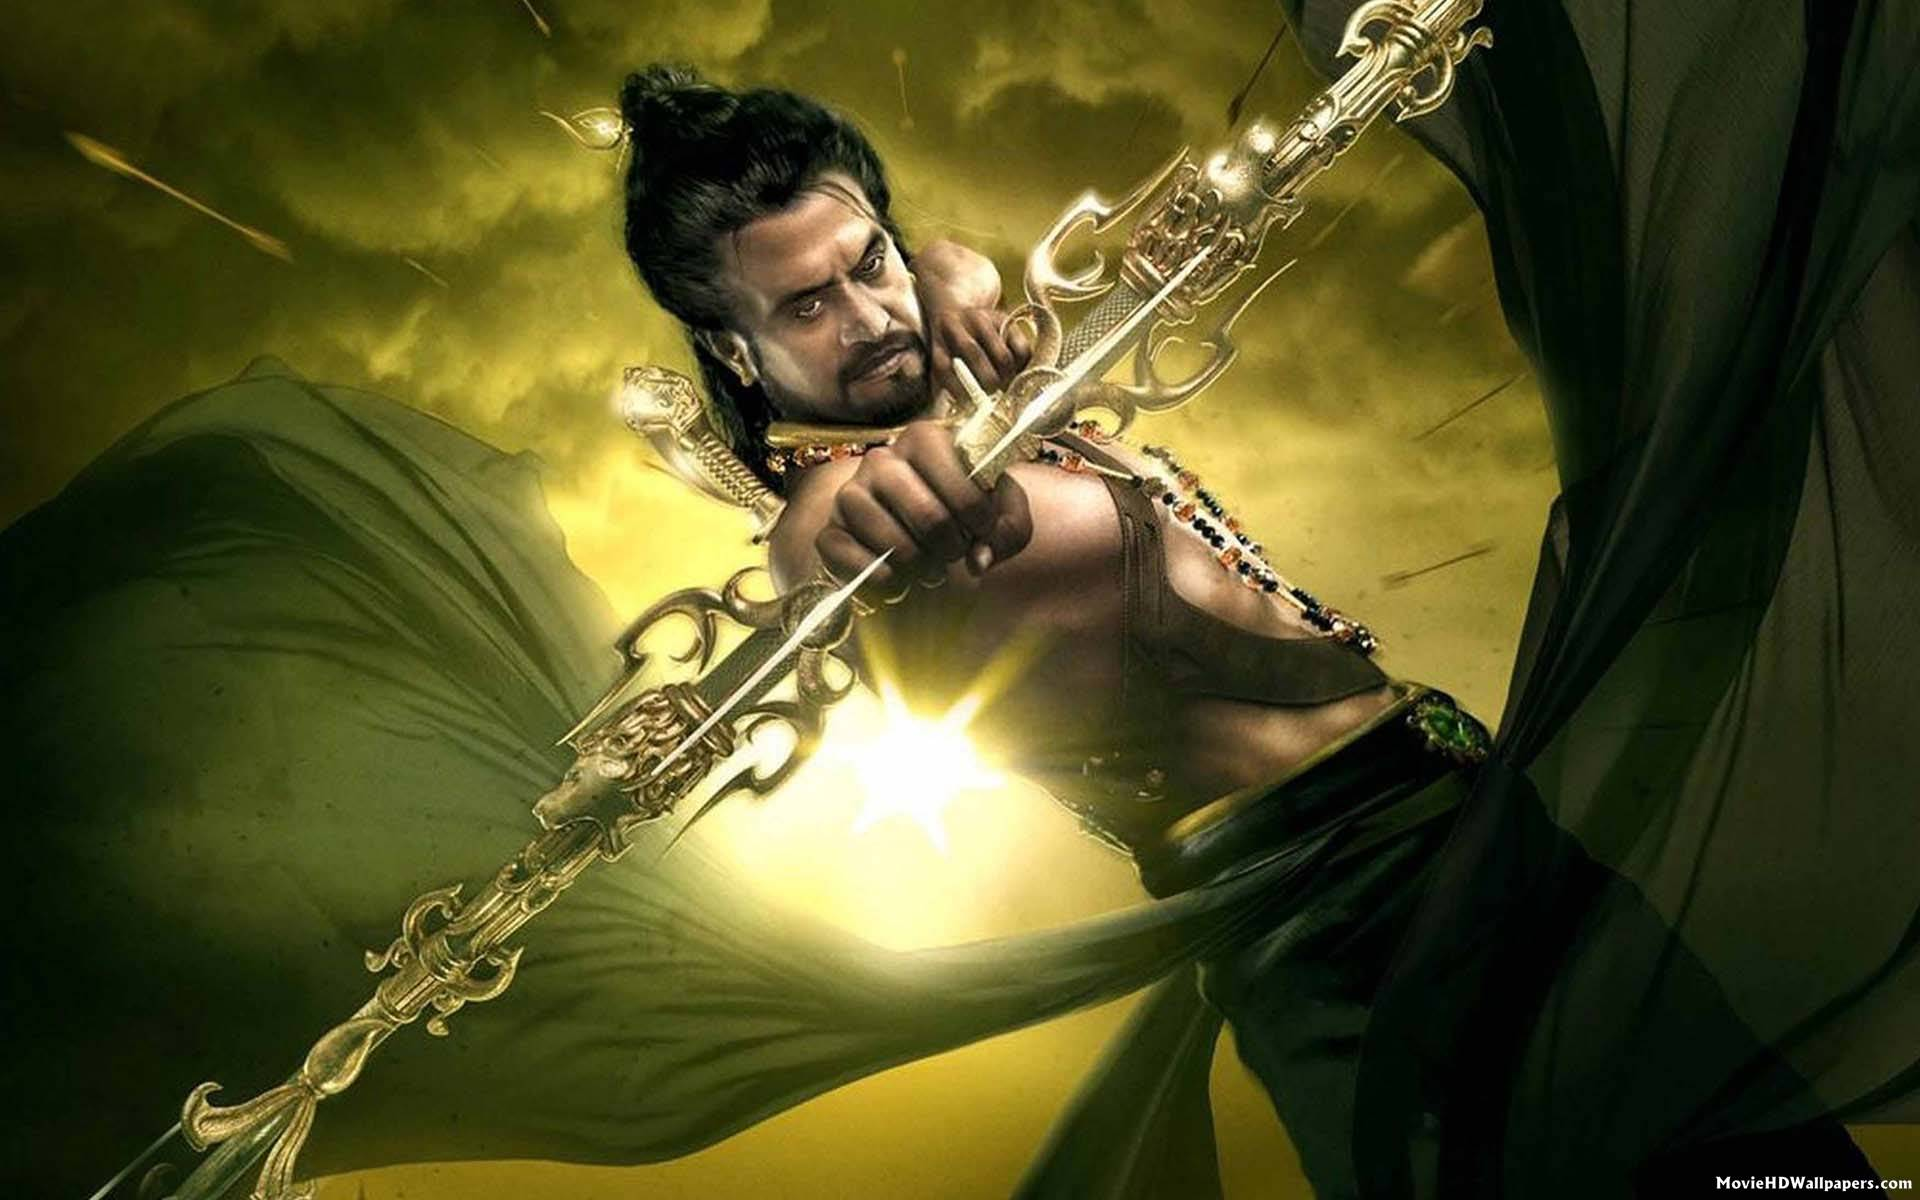 Kochadaiyaan (2013) - Movie HD Wallpapers